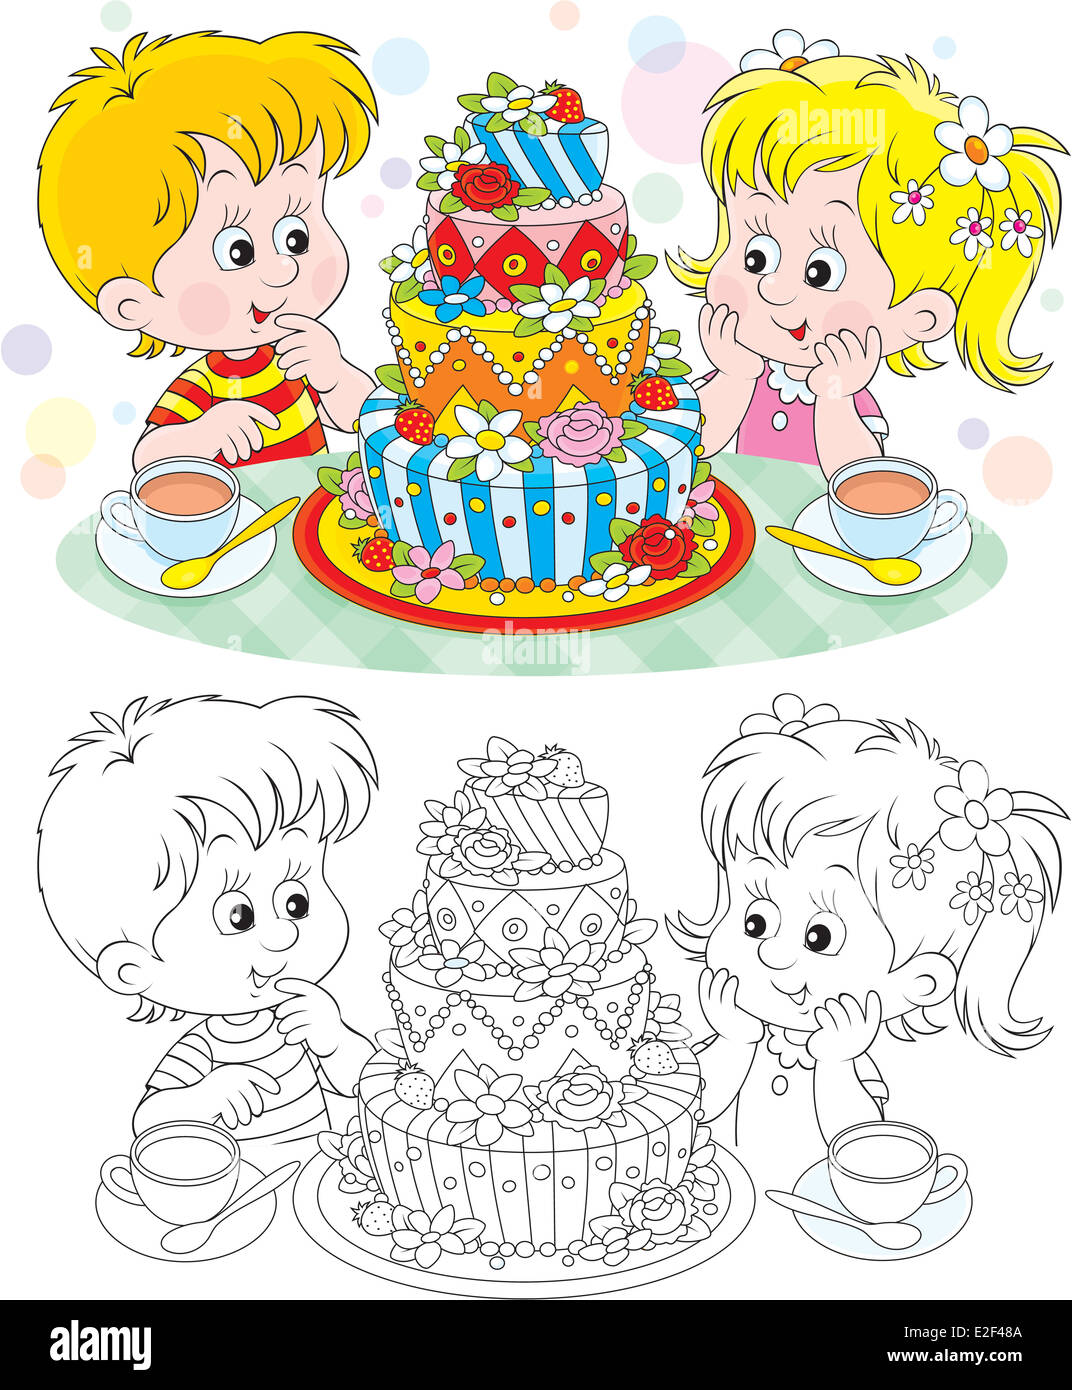 Big Cartoon Birthday Cake Child Drawing Stock Photos Big Cartoon